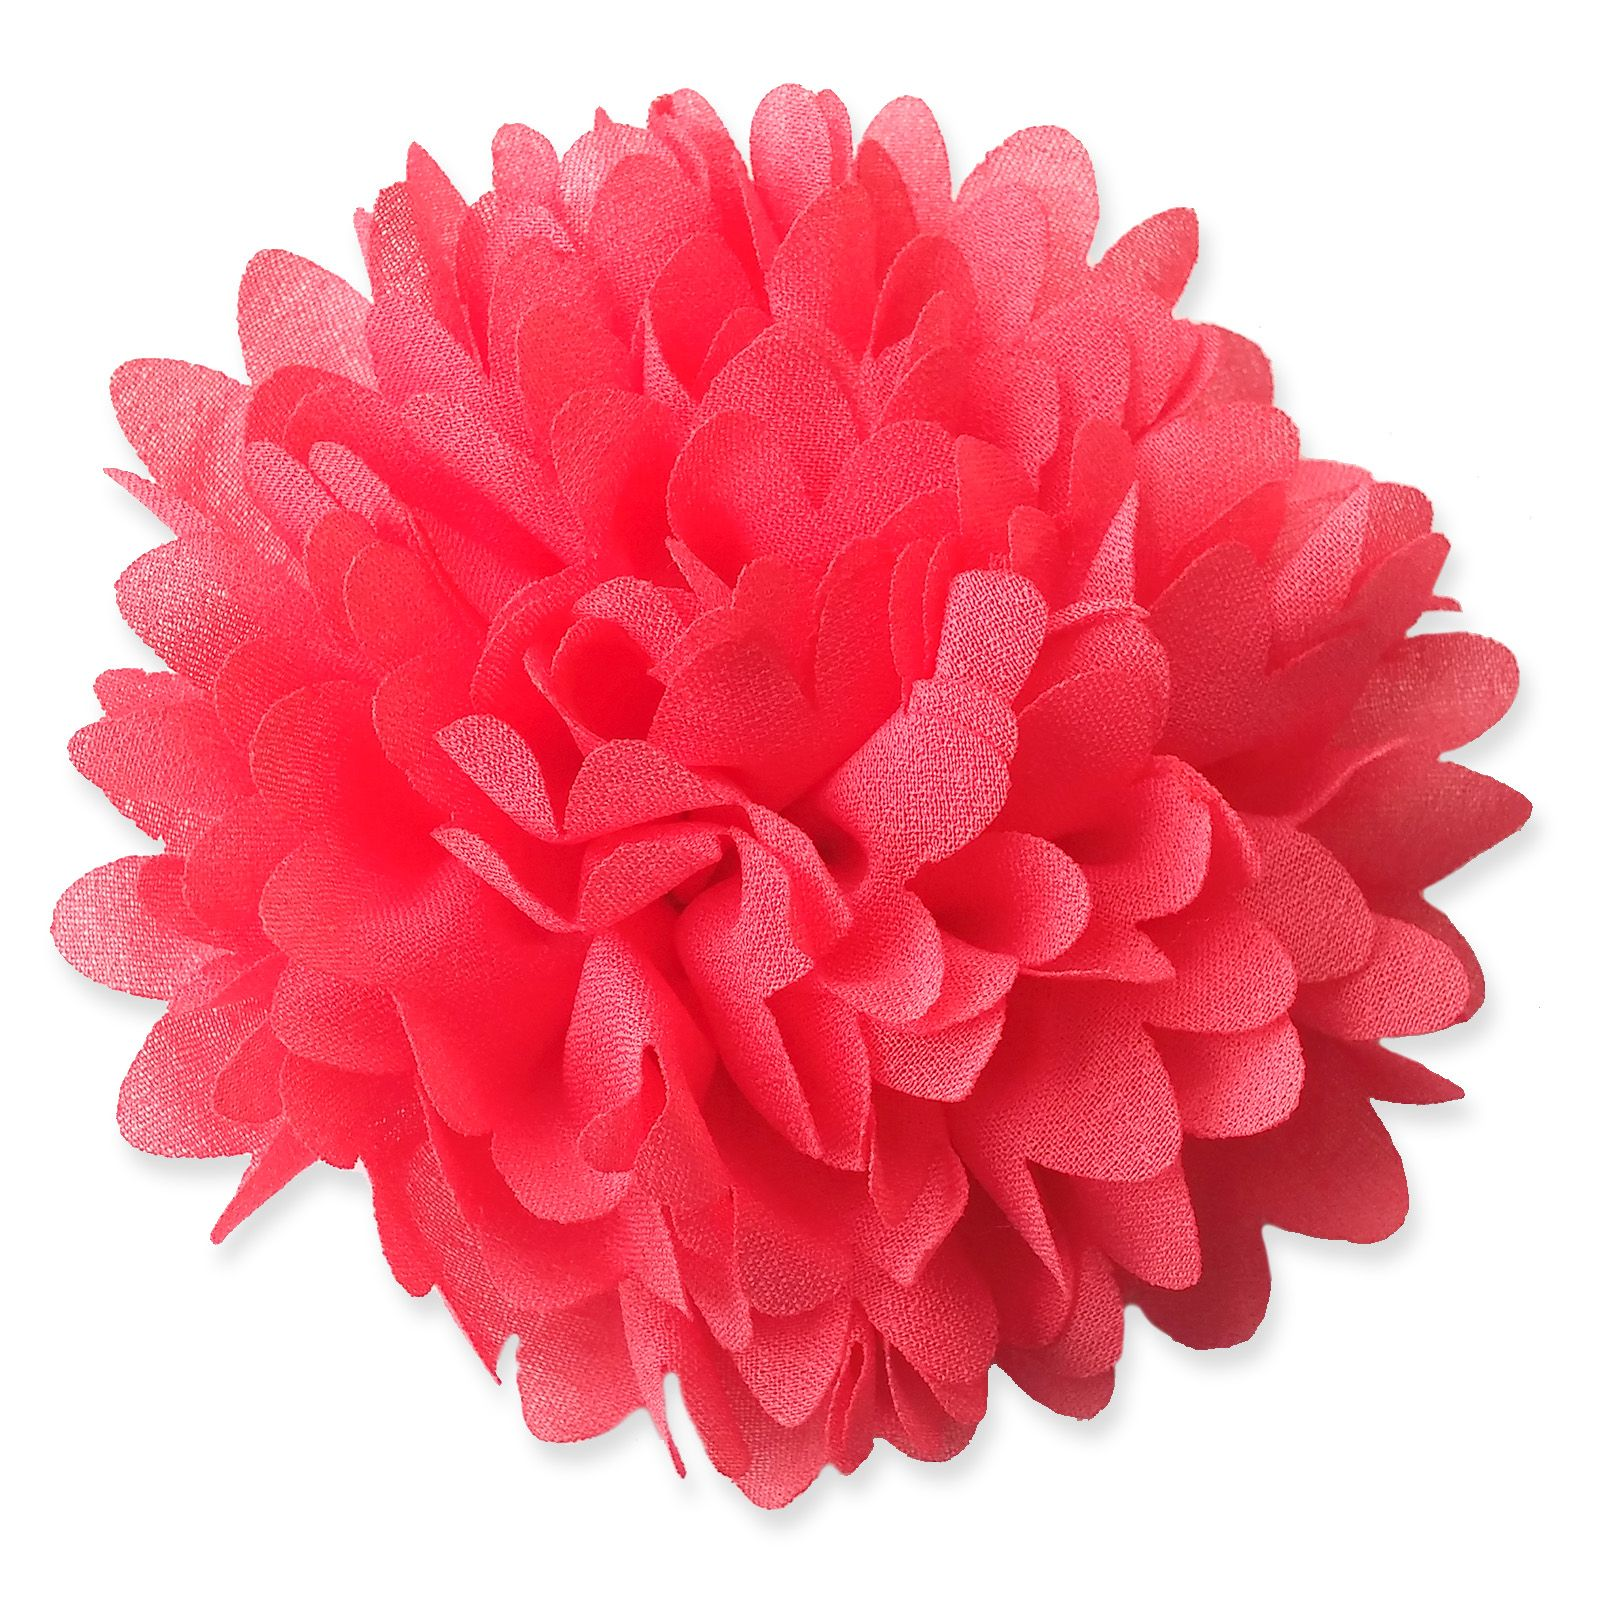 8cm Chrysanthemum CORAL PINK Fabric Flower Applique